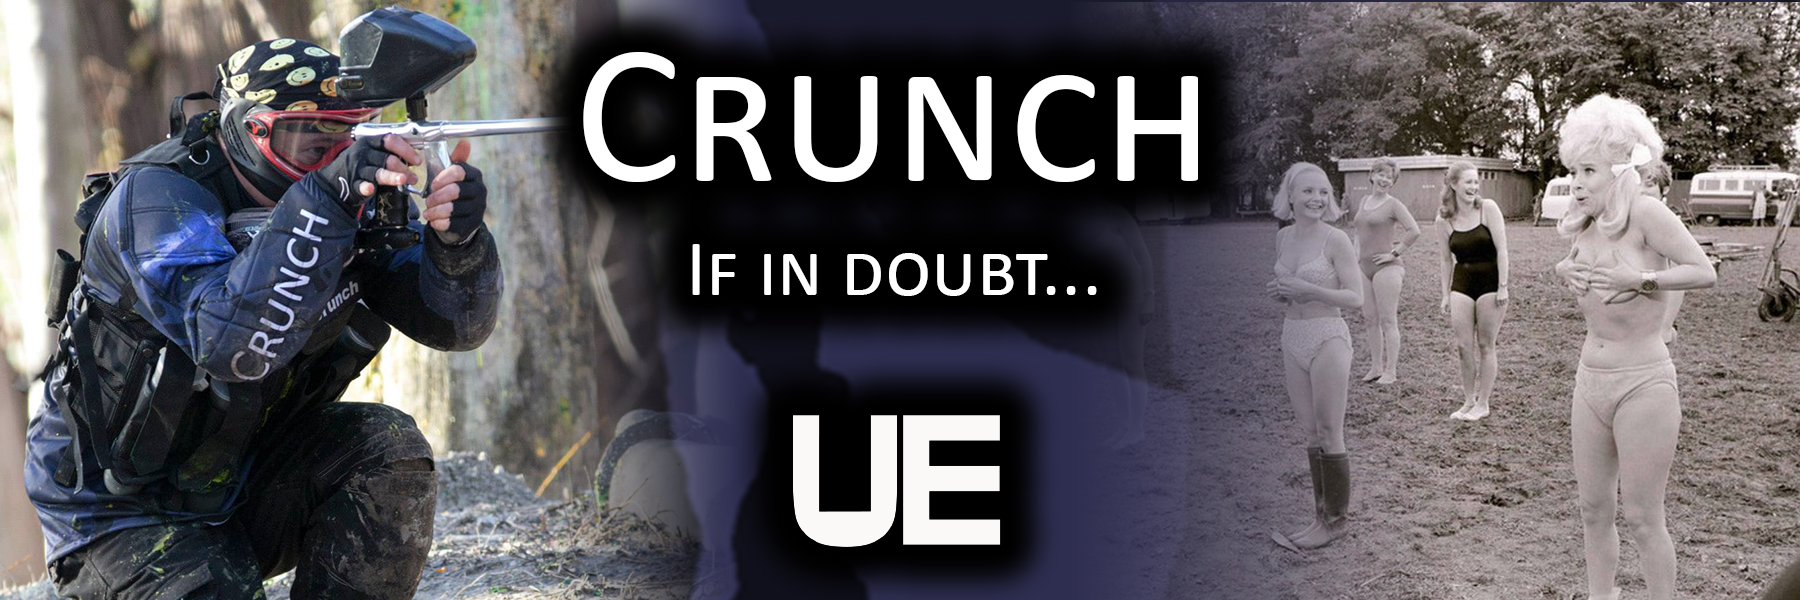 Crunch - If in doubt...